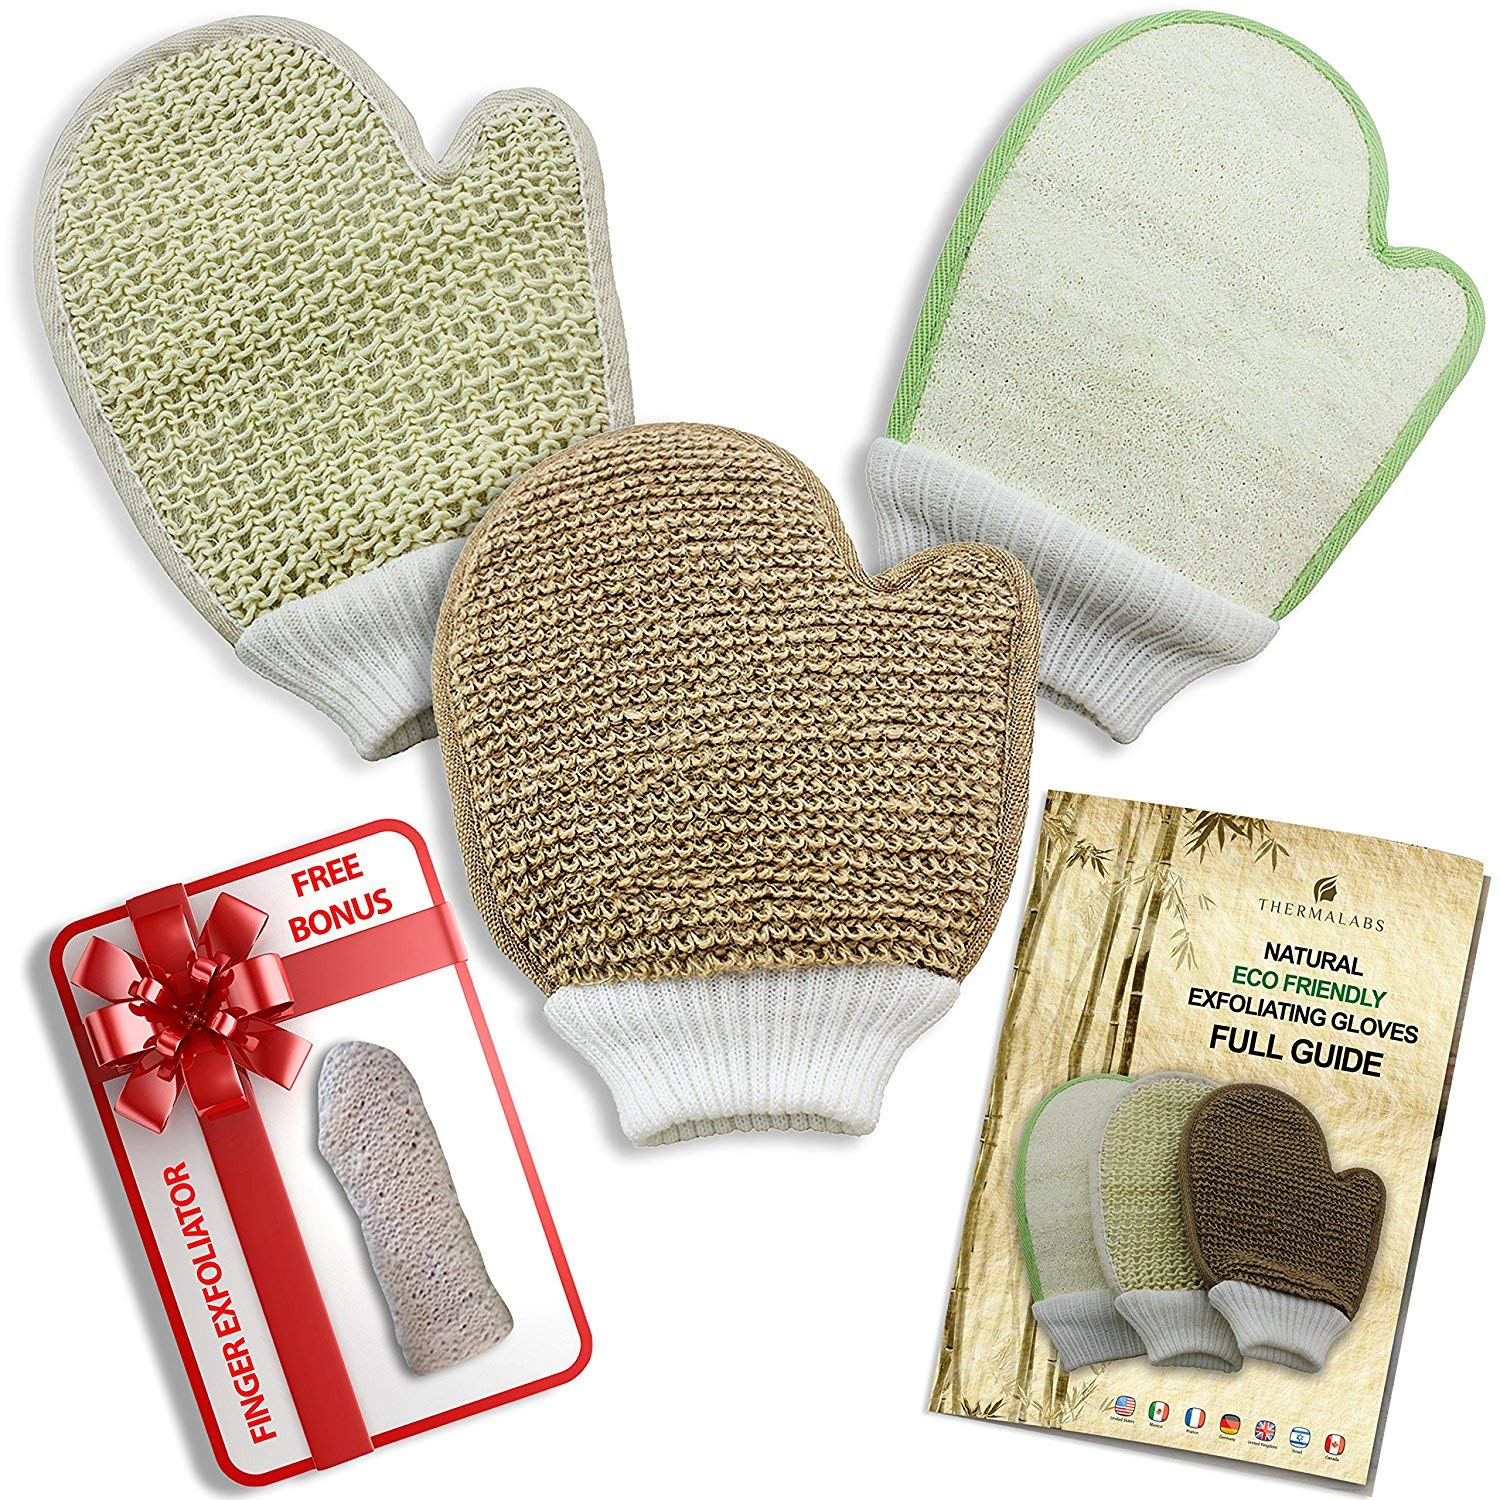 Natural Eco Friendly Body Scrub Exfoliator Gloves: Bamboo Fiber and Loofah, Jute and Sisal Mitts Thermalabs TRML-ECO-GLV